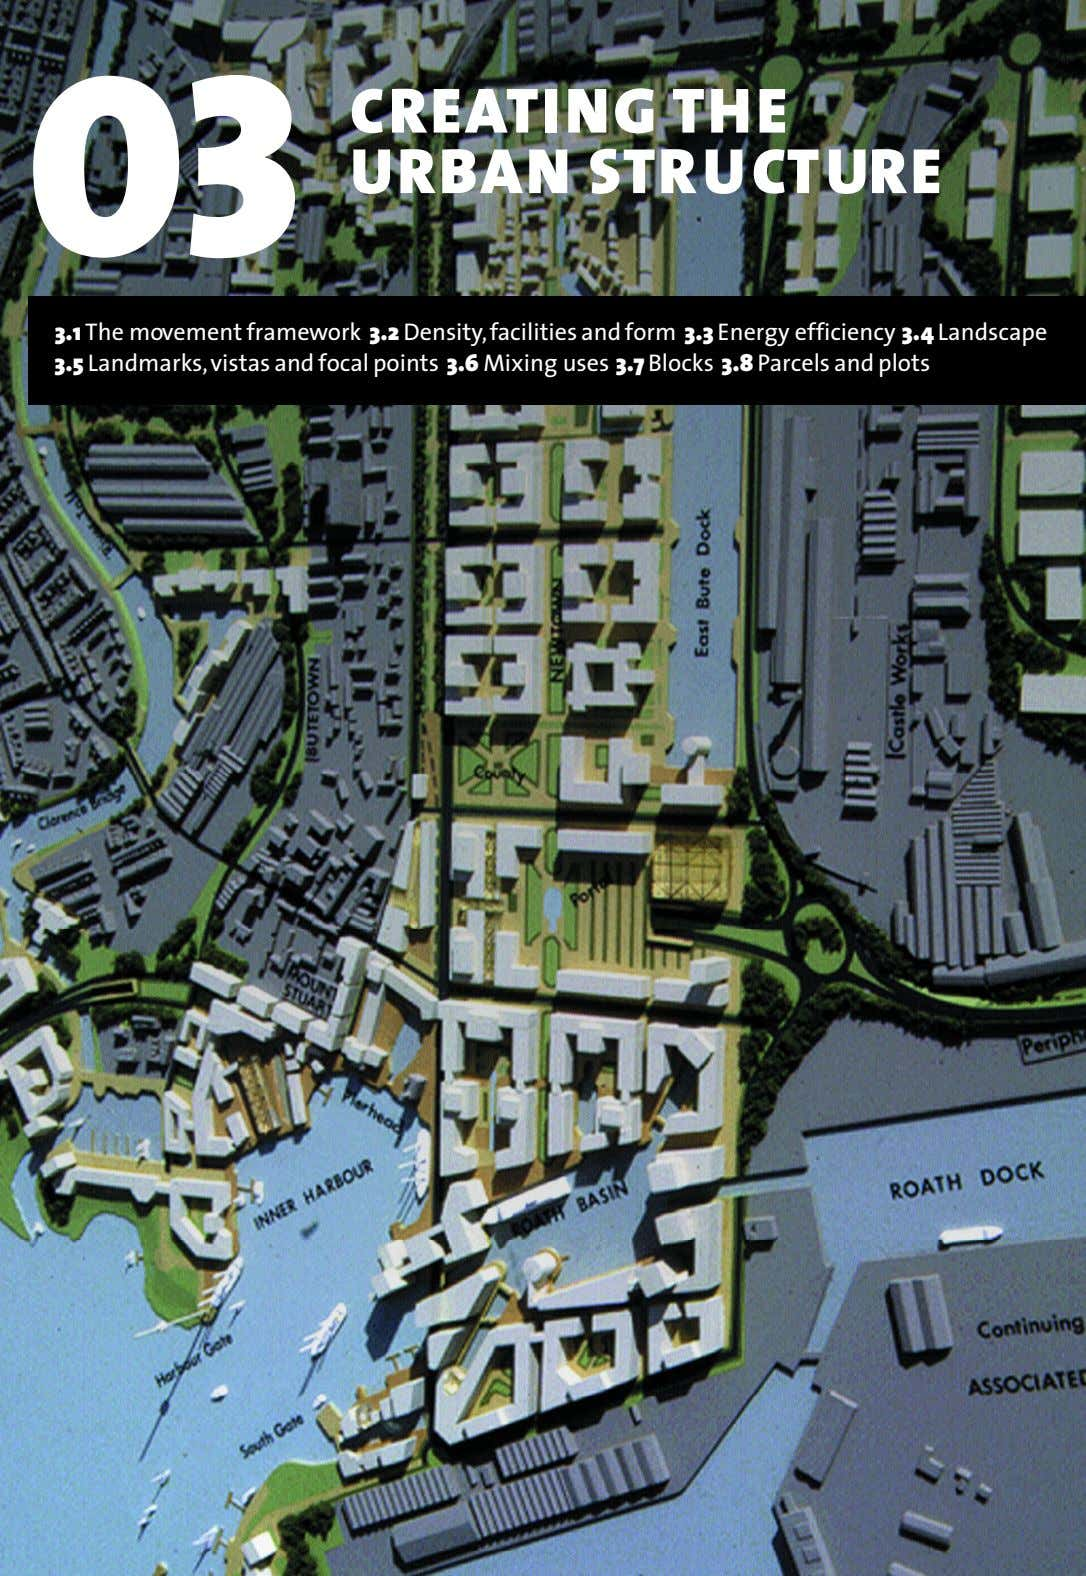 03 CREATING THE URBAN STR U CT URE 3.1 The movement framework 3.2 Density,facilities and